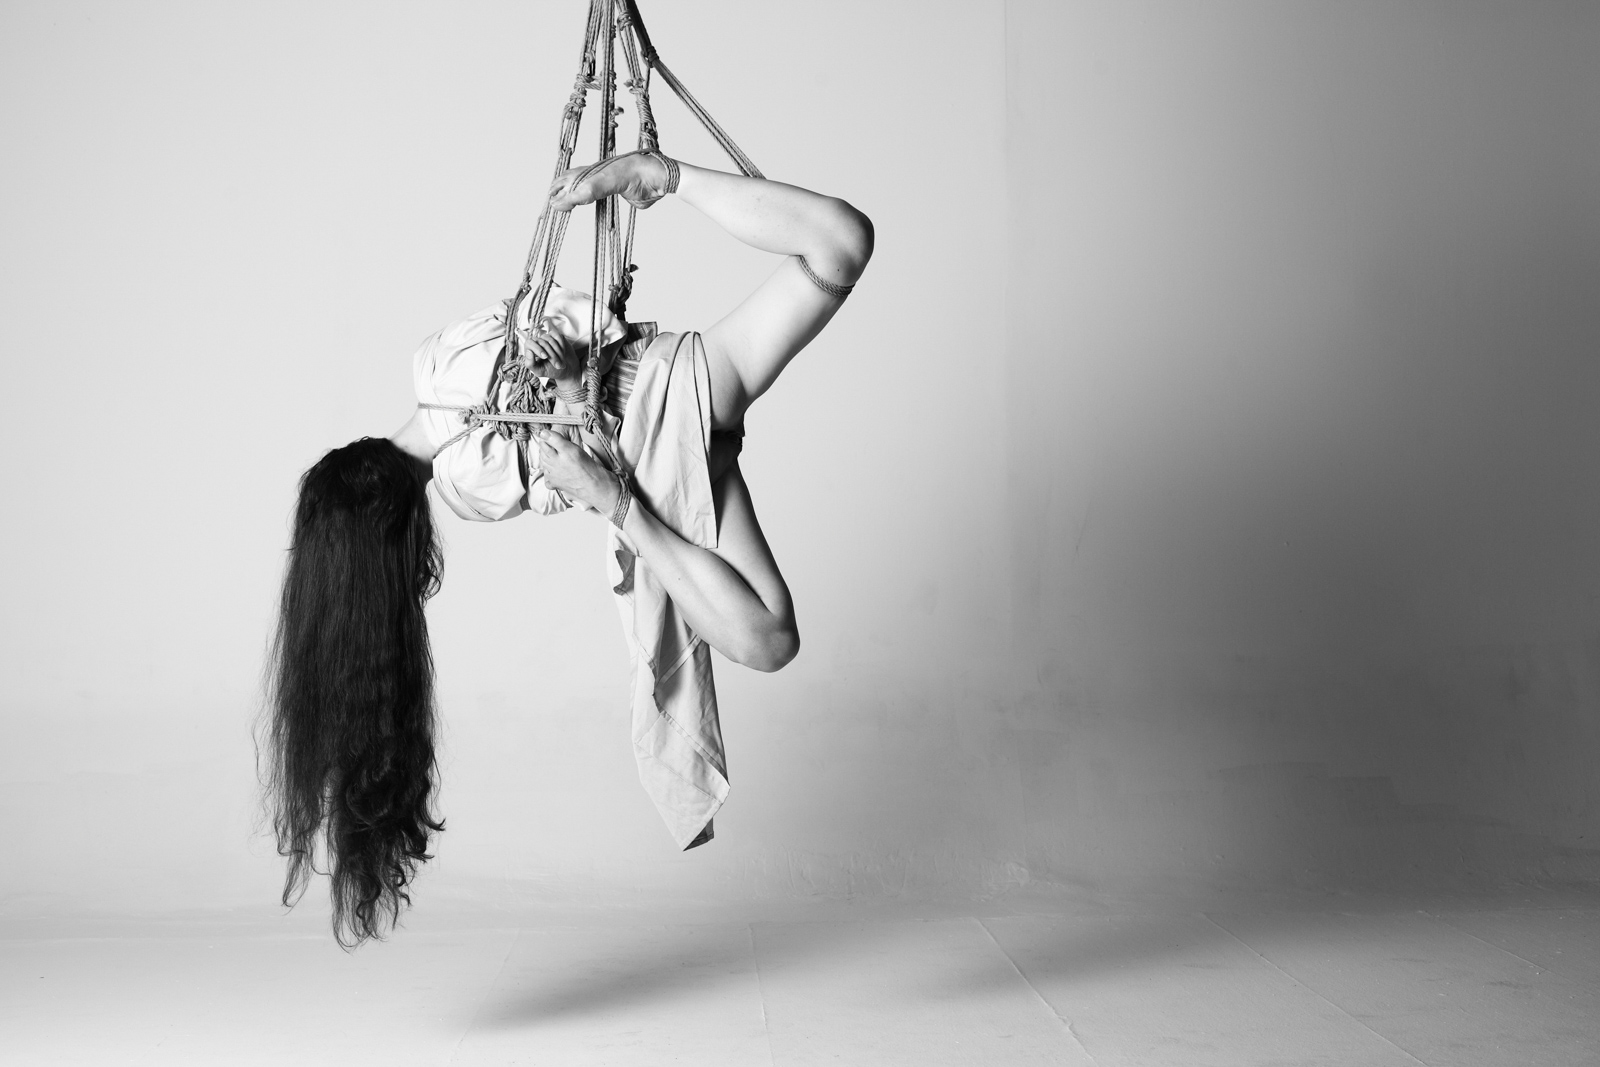 woman with long dark hair wearing a kimono tied in a shibari yoko-zuri side suspension